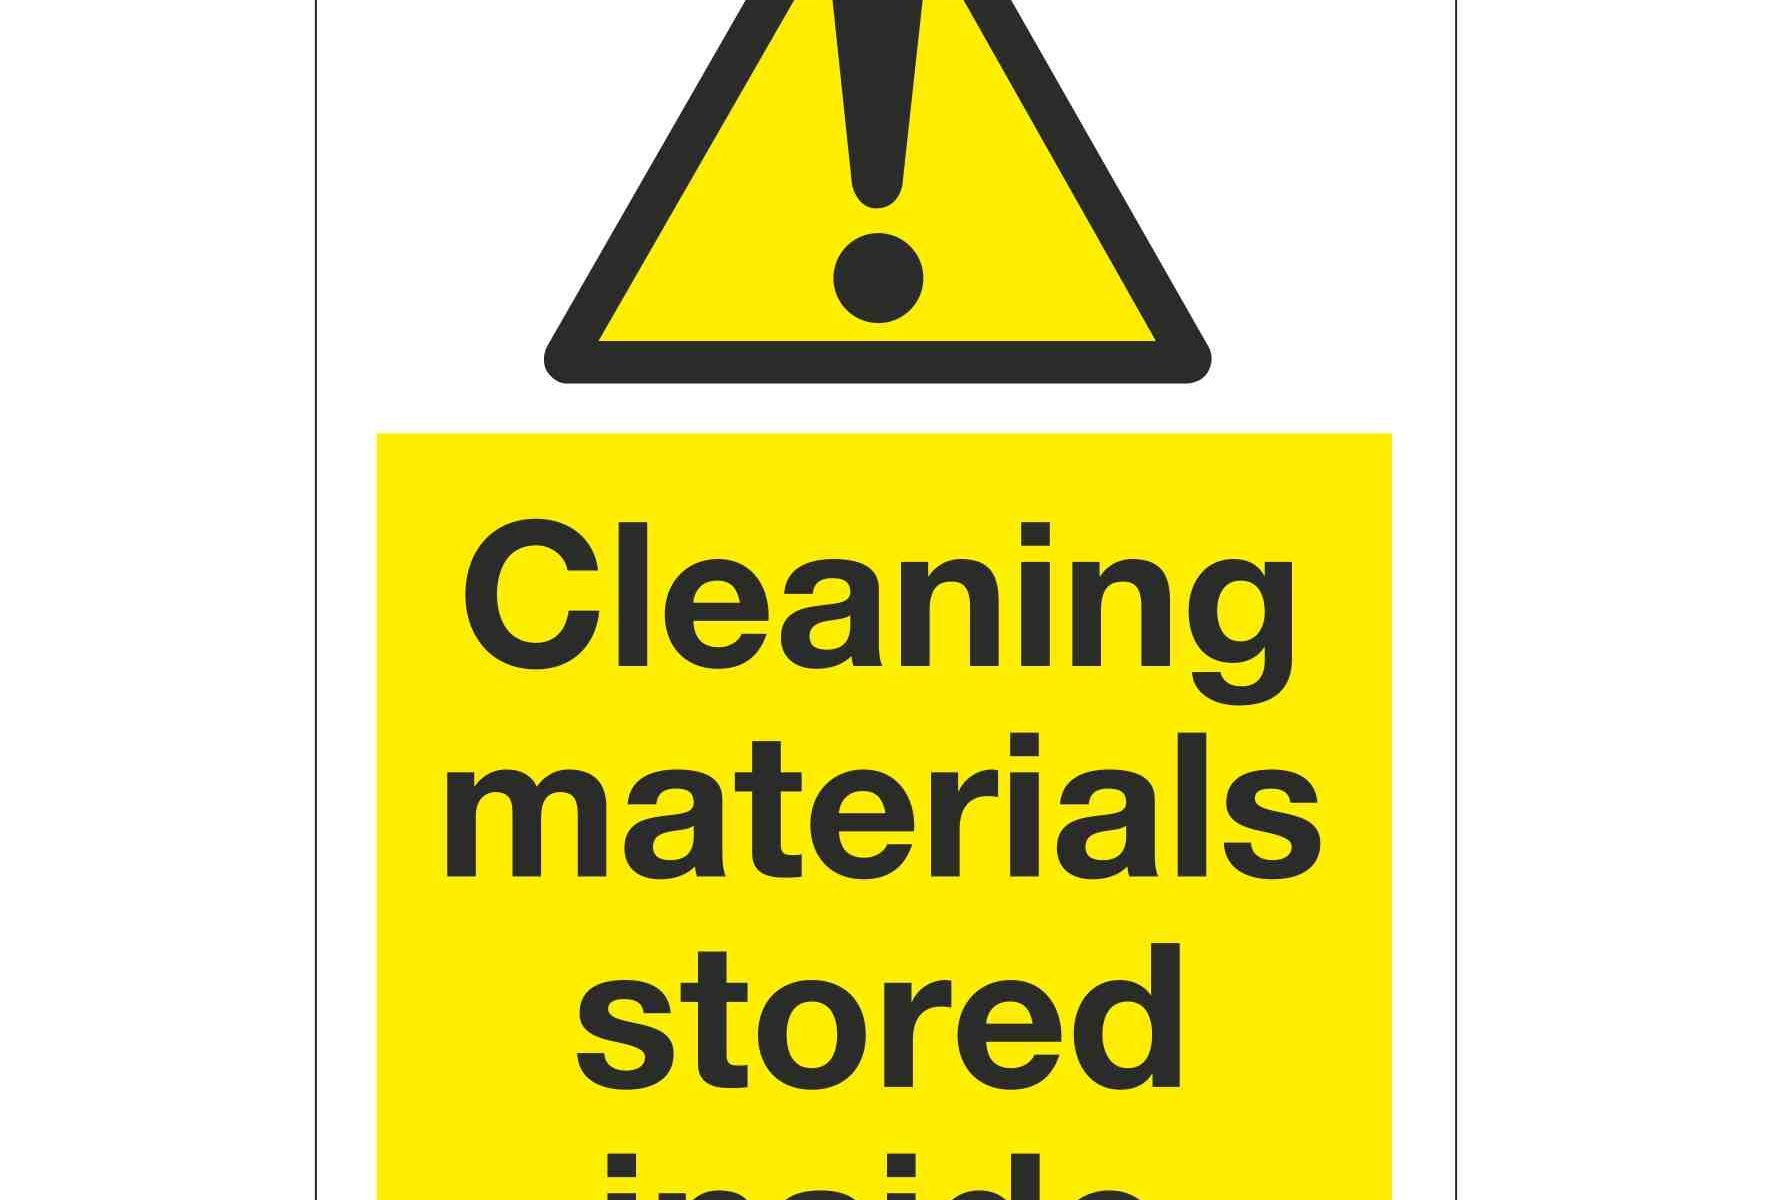 Cleaning materials stored inside